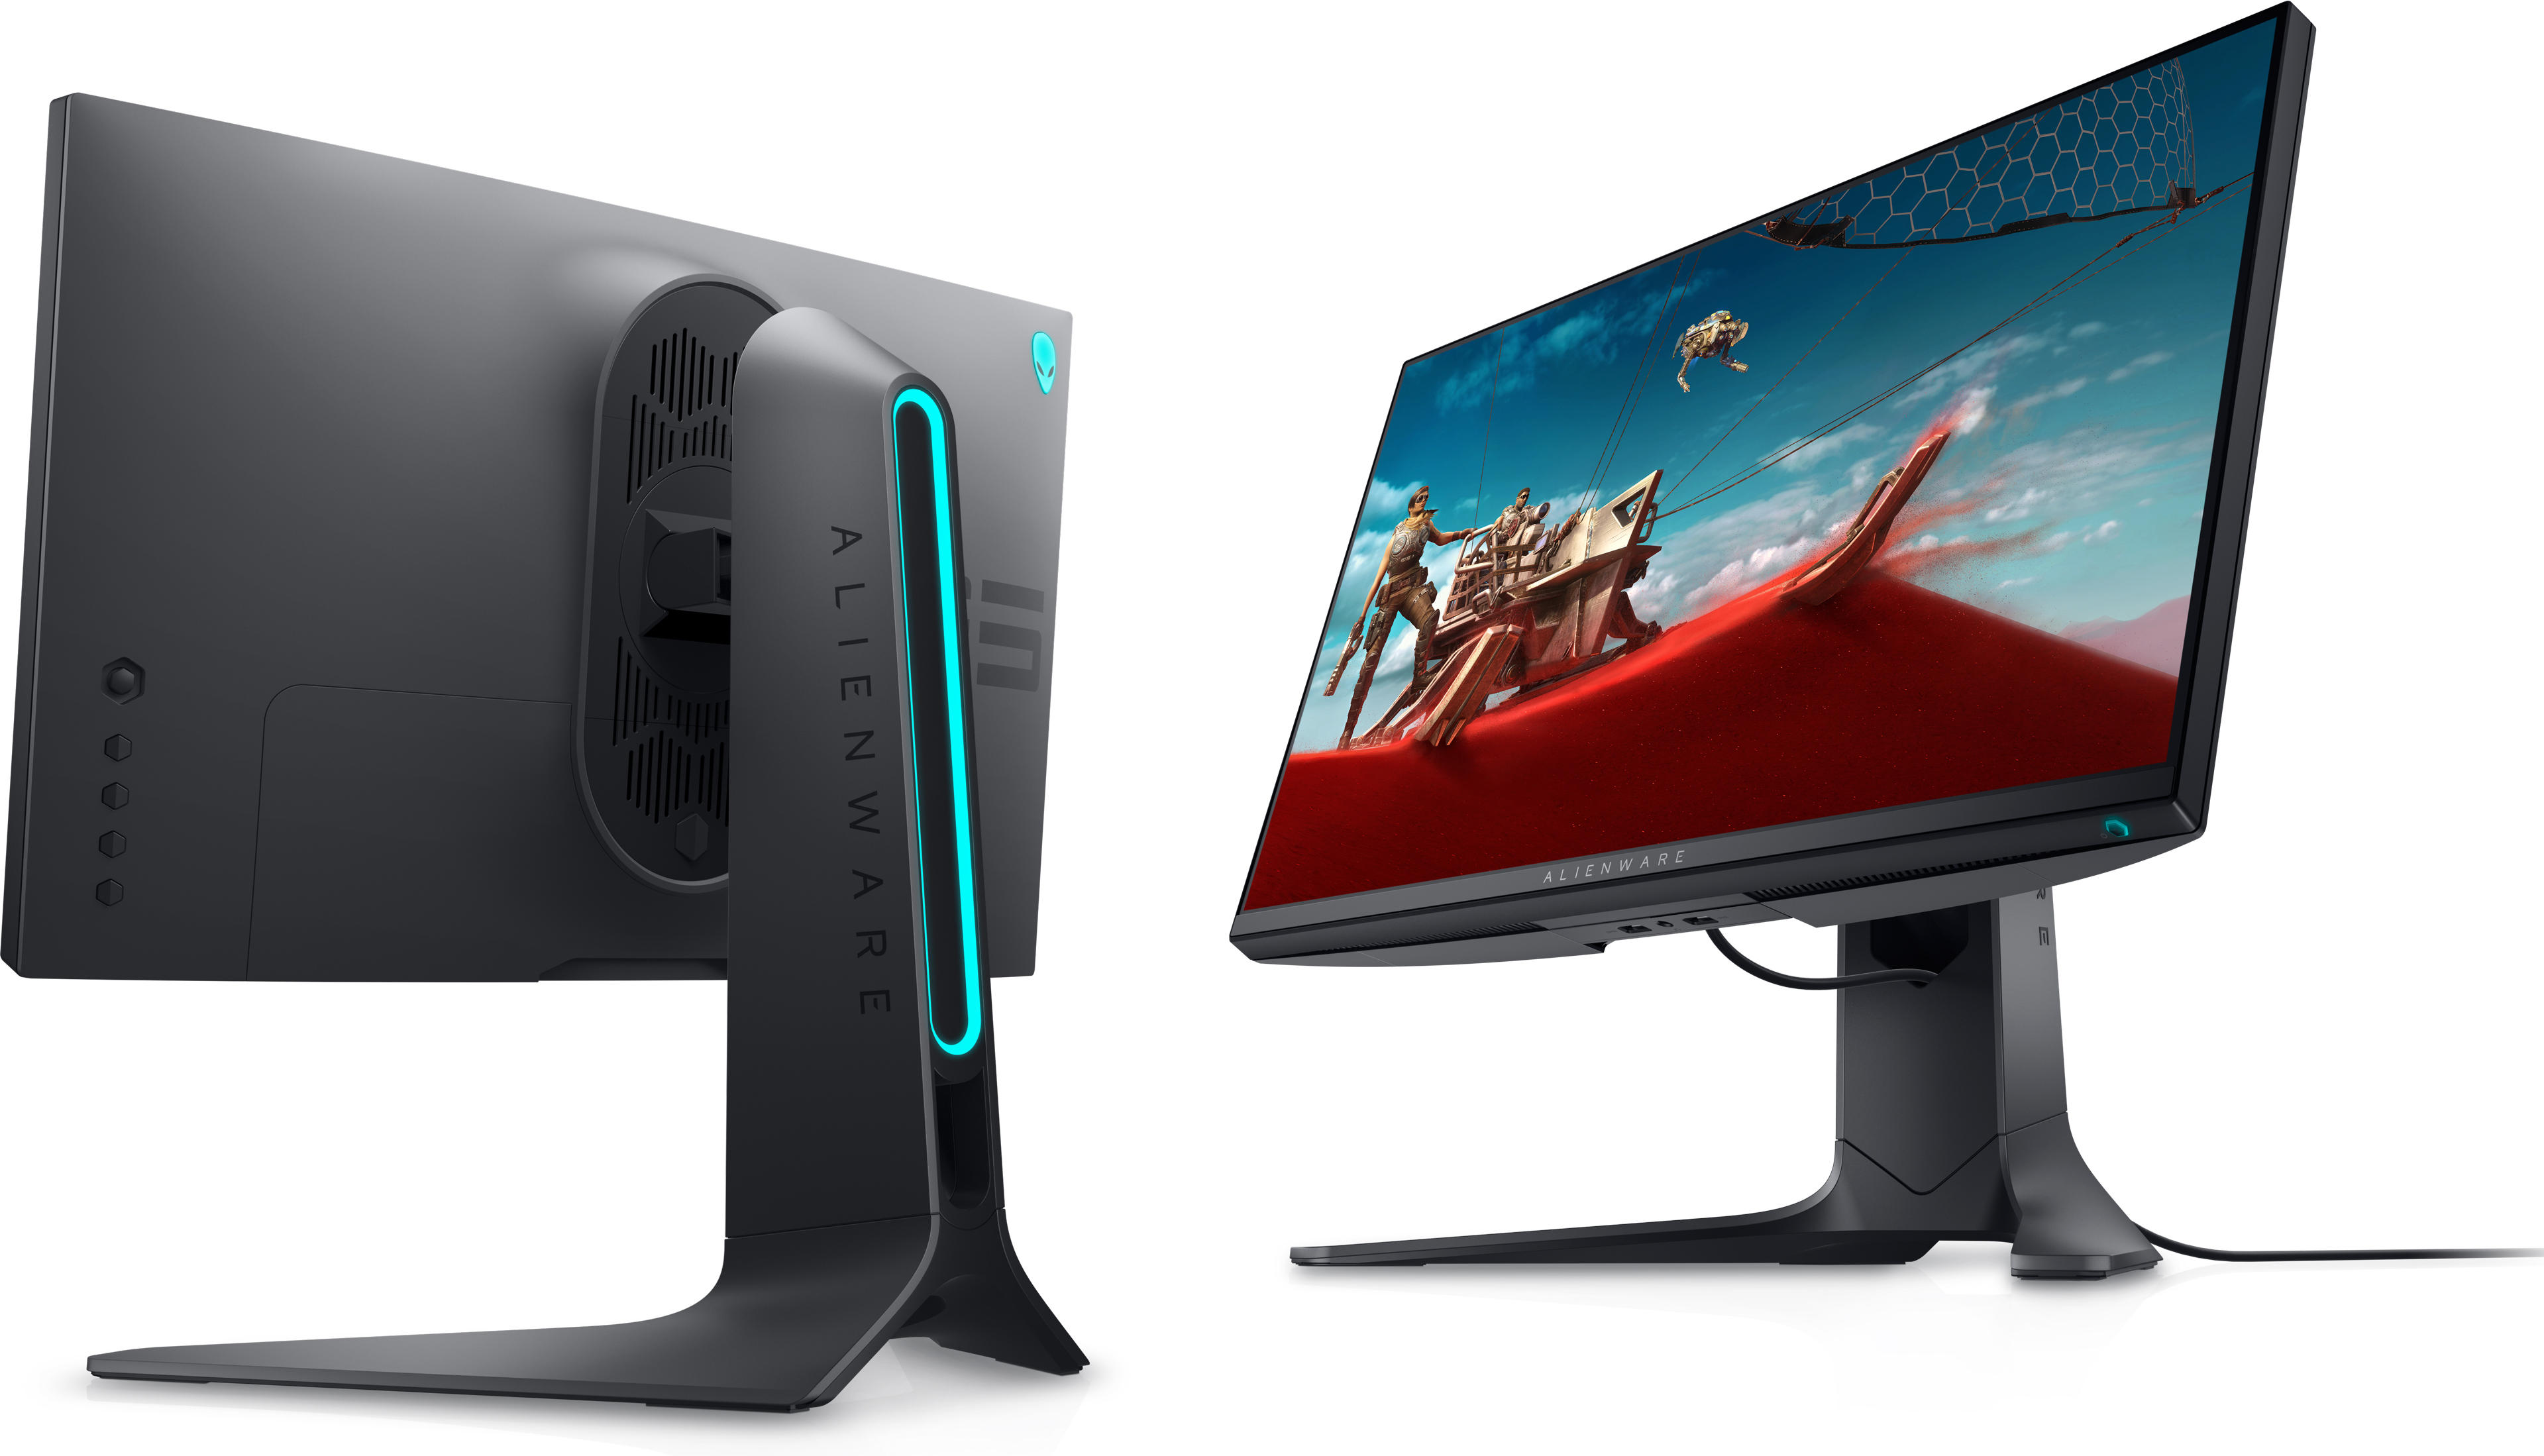 Alienware-25-Gaming-Monitor_right-side-display-view.jpg